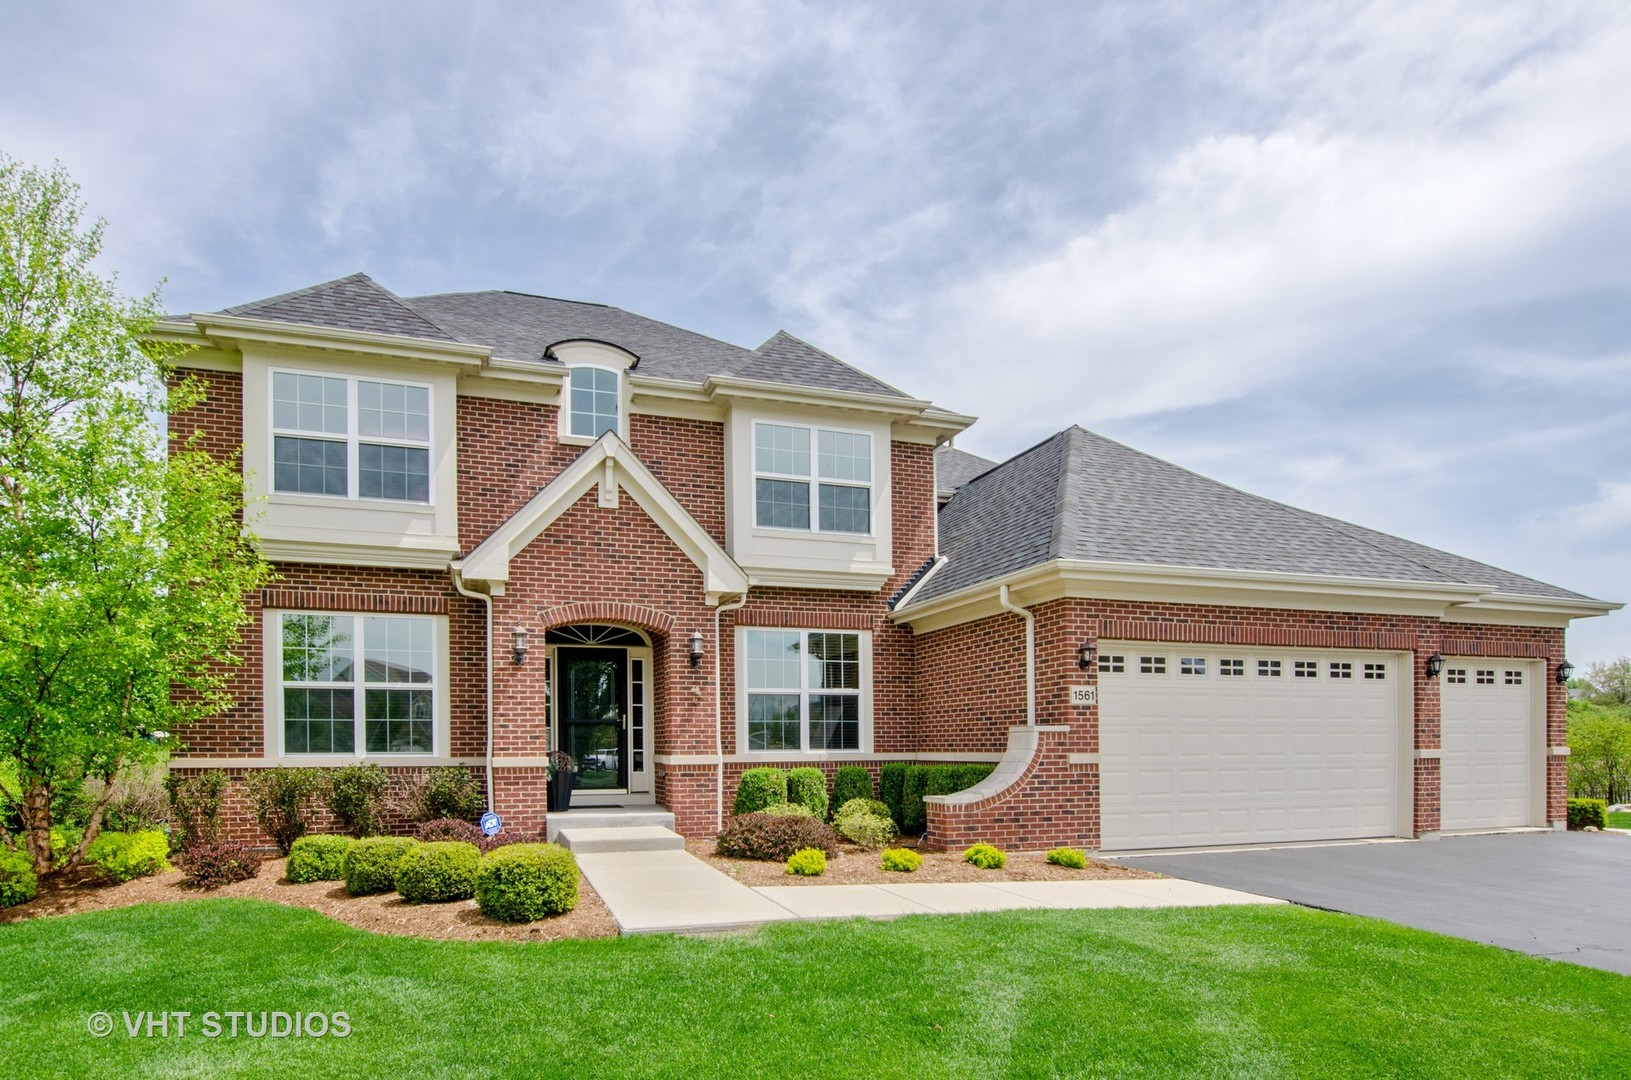 Property for sale at 1561 Creeks Crossing Drive, Algonquin,  IL 60102